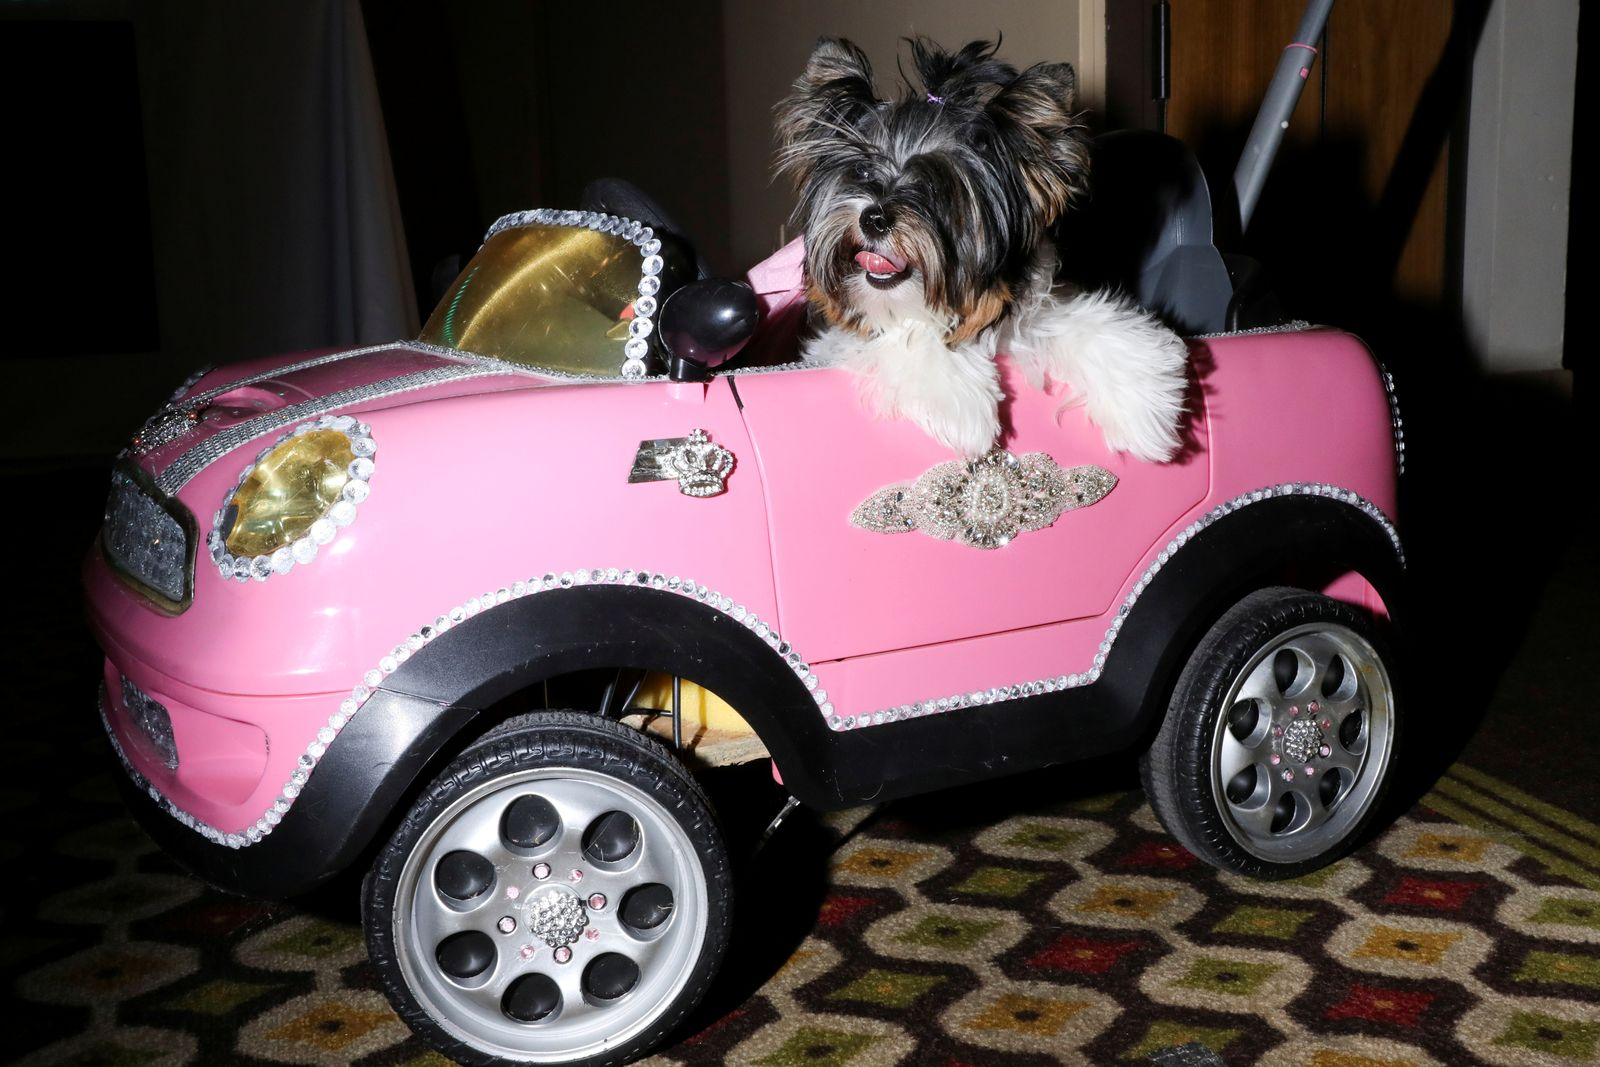 A dog sits in a toy car at the 17th annual New York Pet Fashion Show in the Manhattan borough of New York